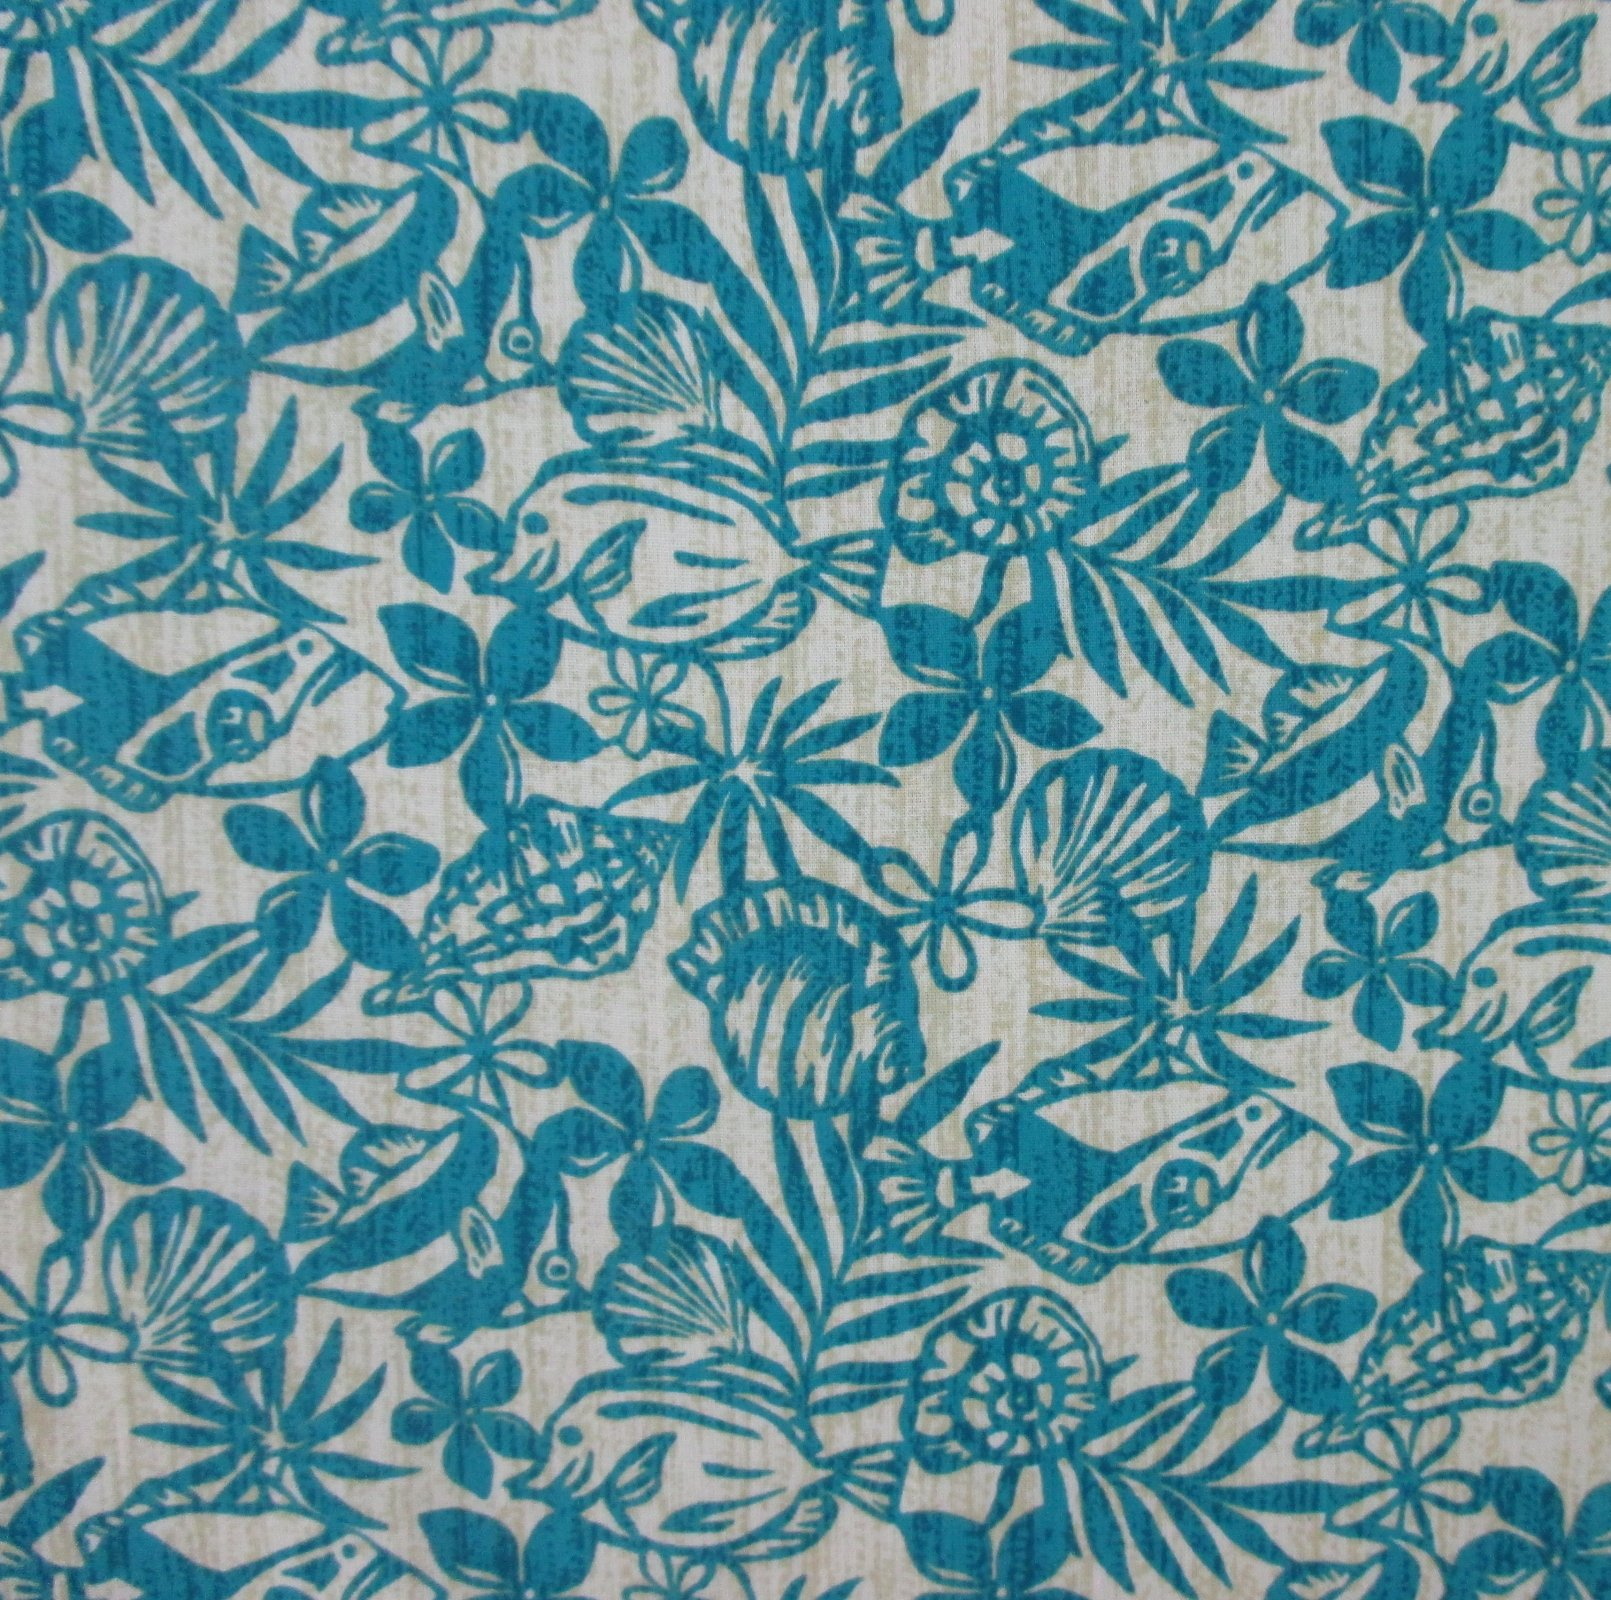 Small Tropical Sealife - Teal